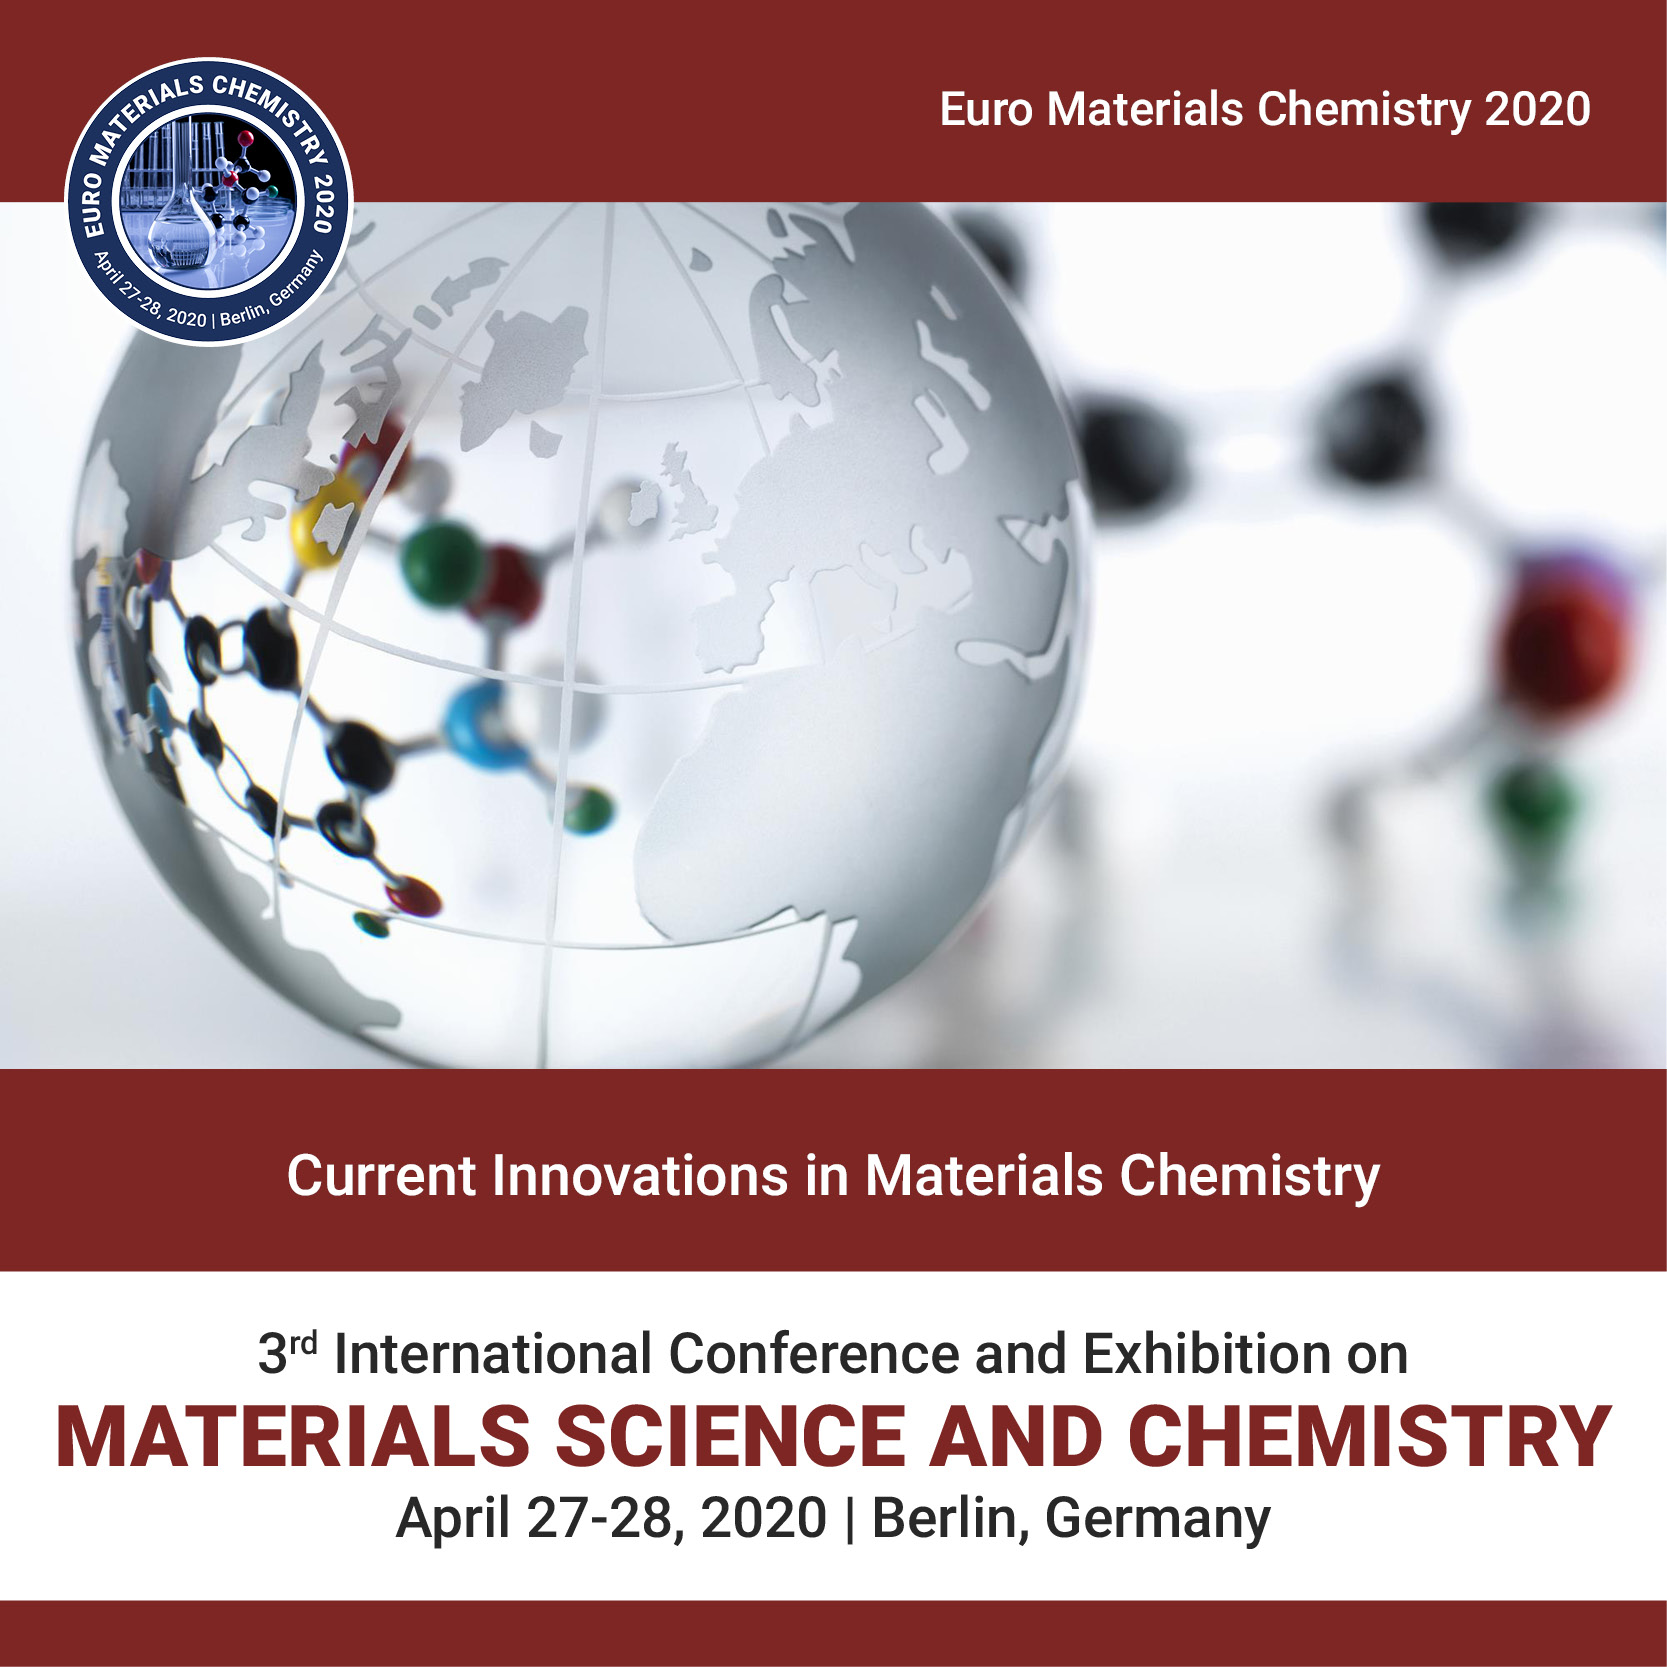 Current Innovations in Materials Chemistry Photo